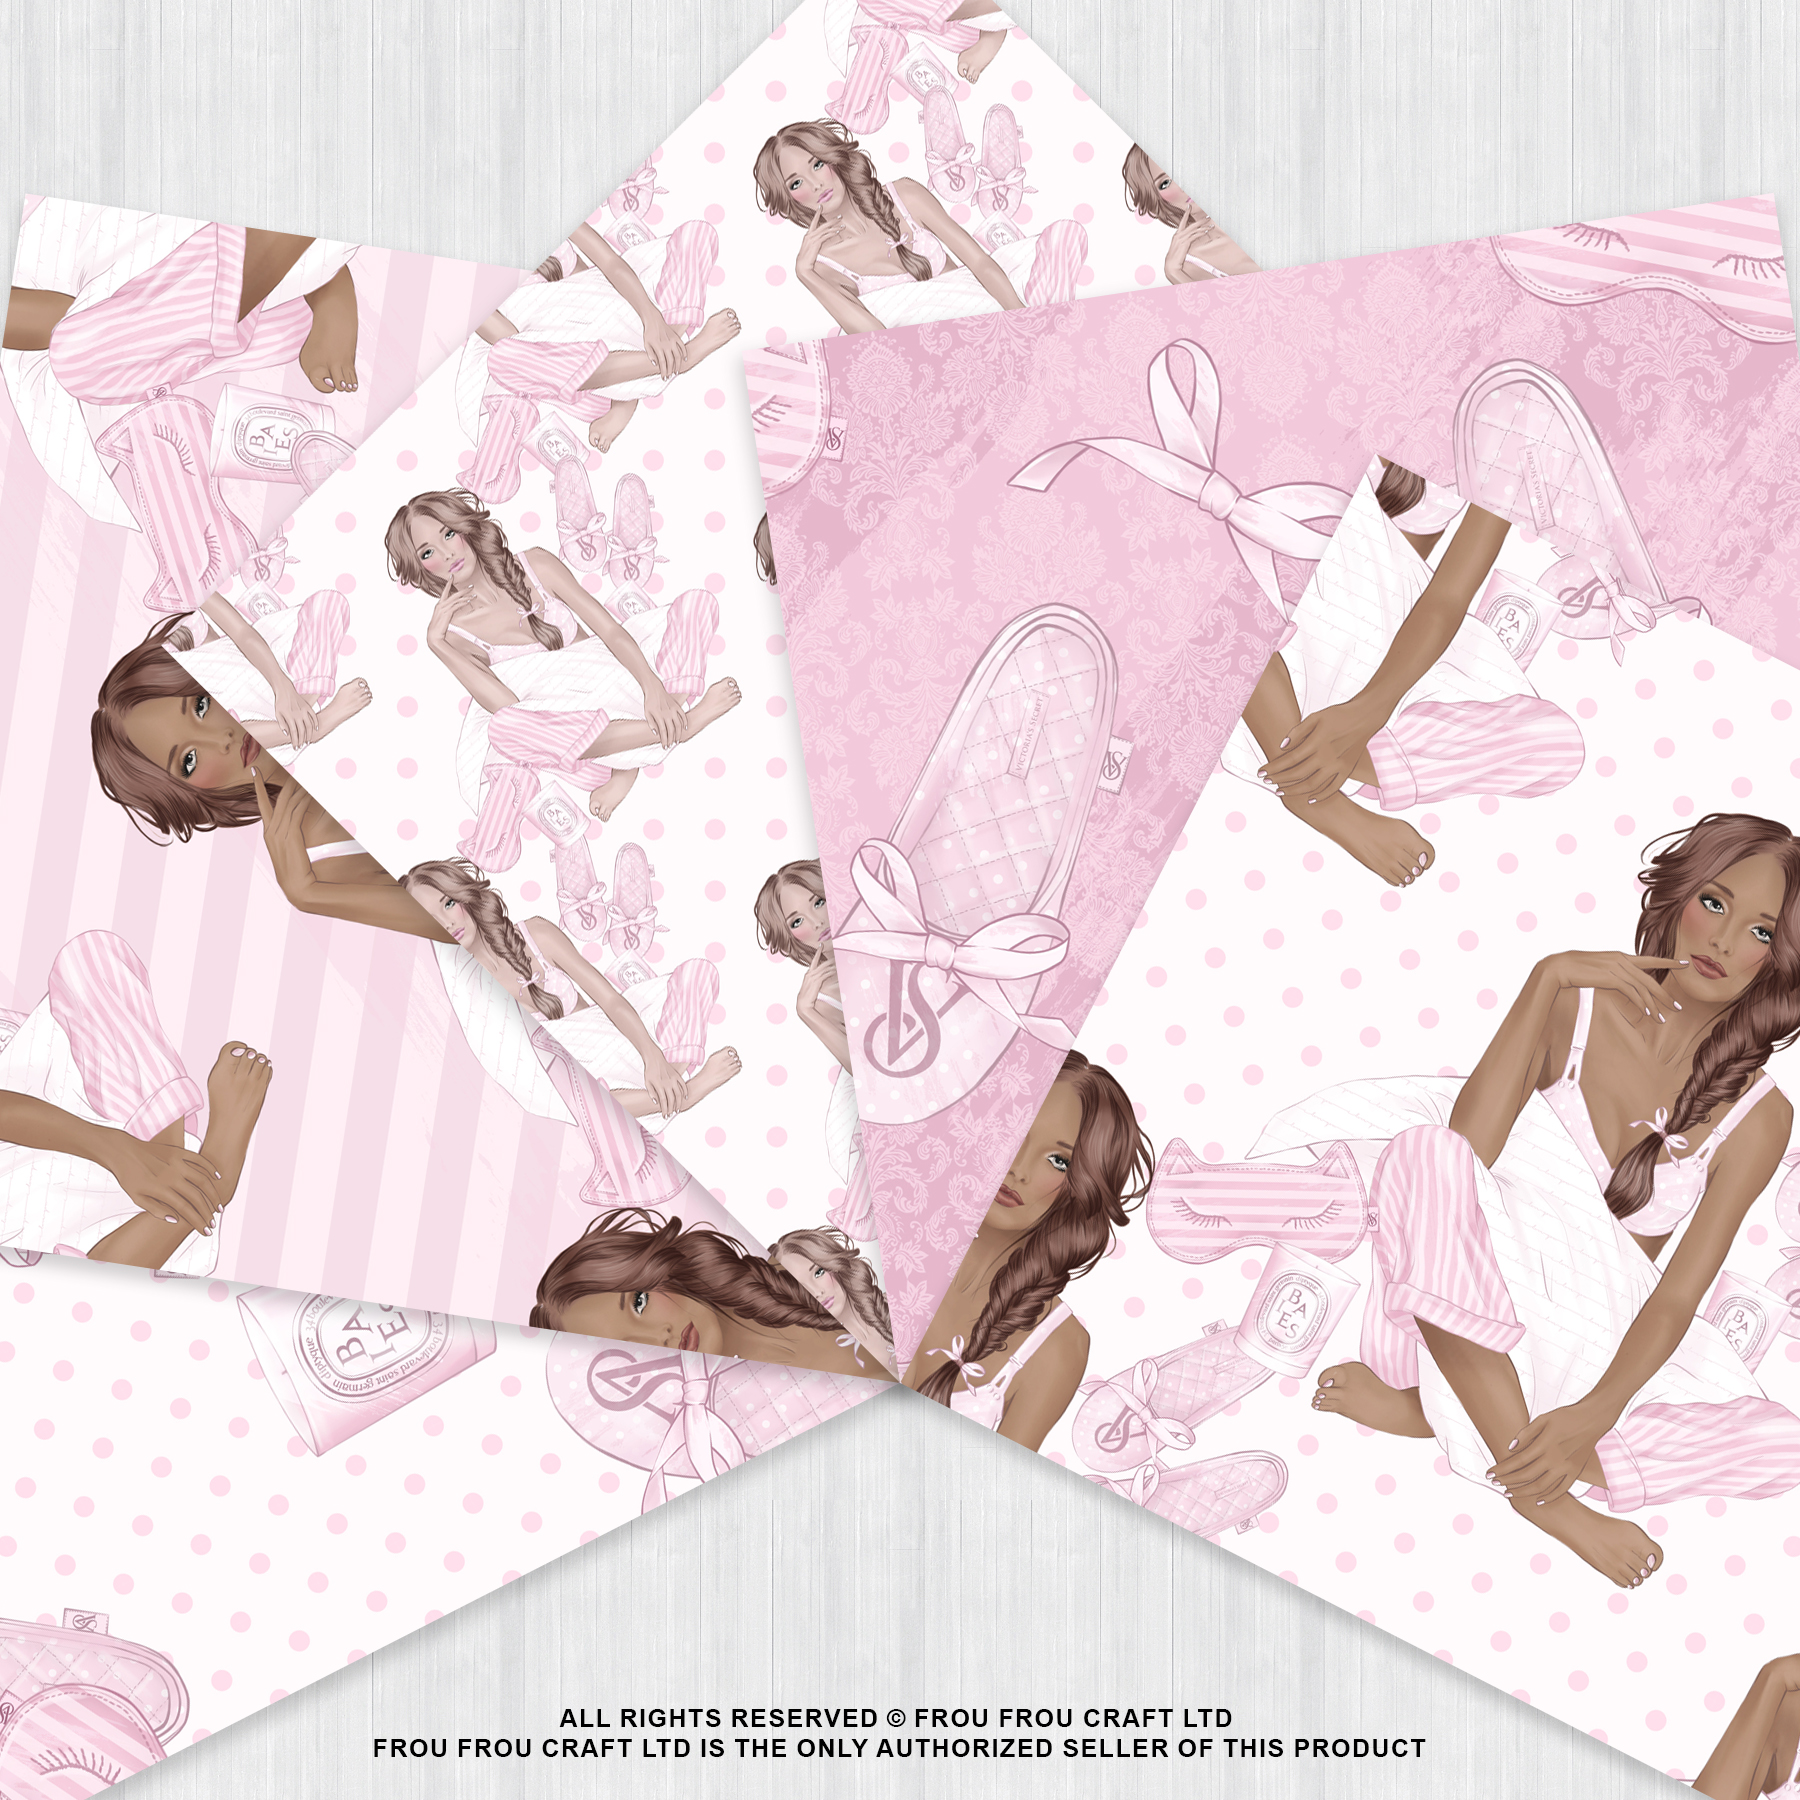 Holiday Weekend Fashion Girl Pijamas Paper Pack example image 4